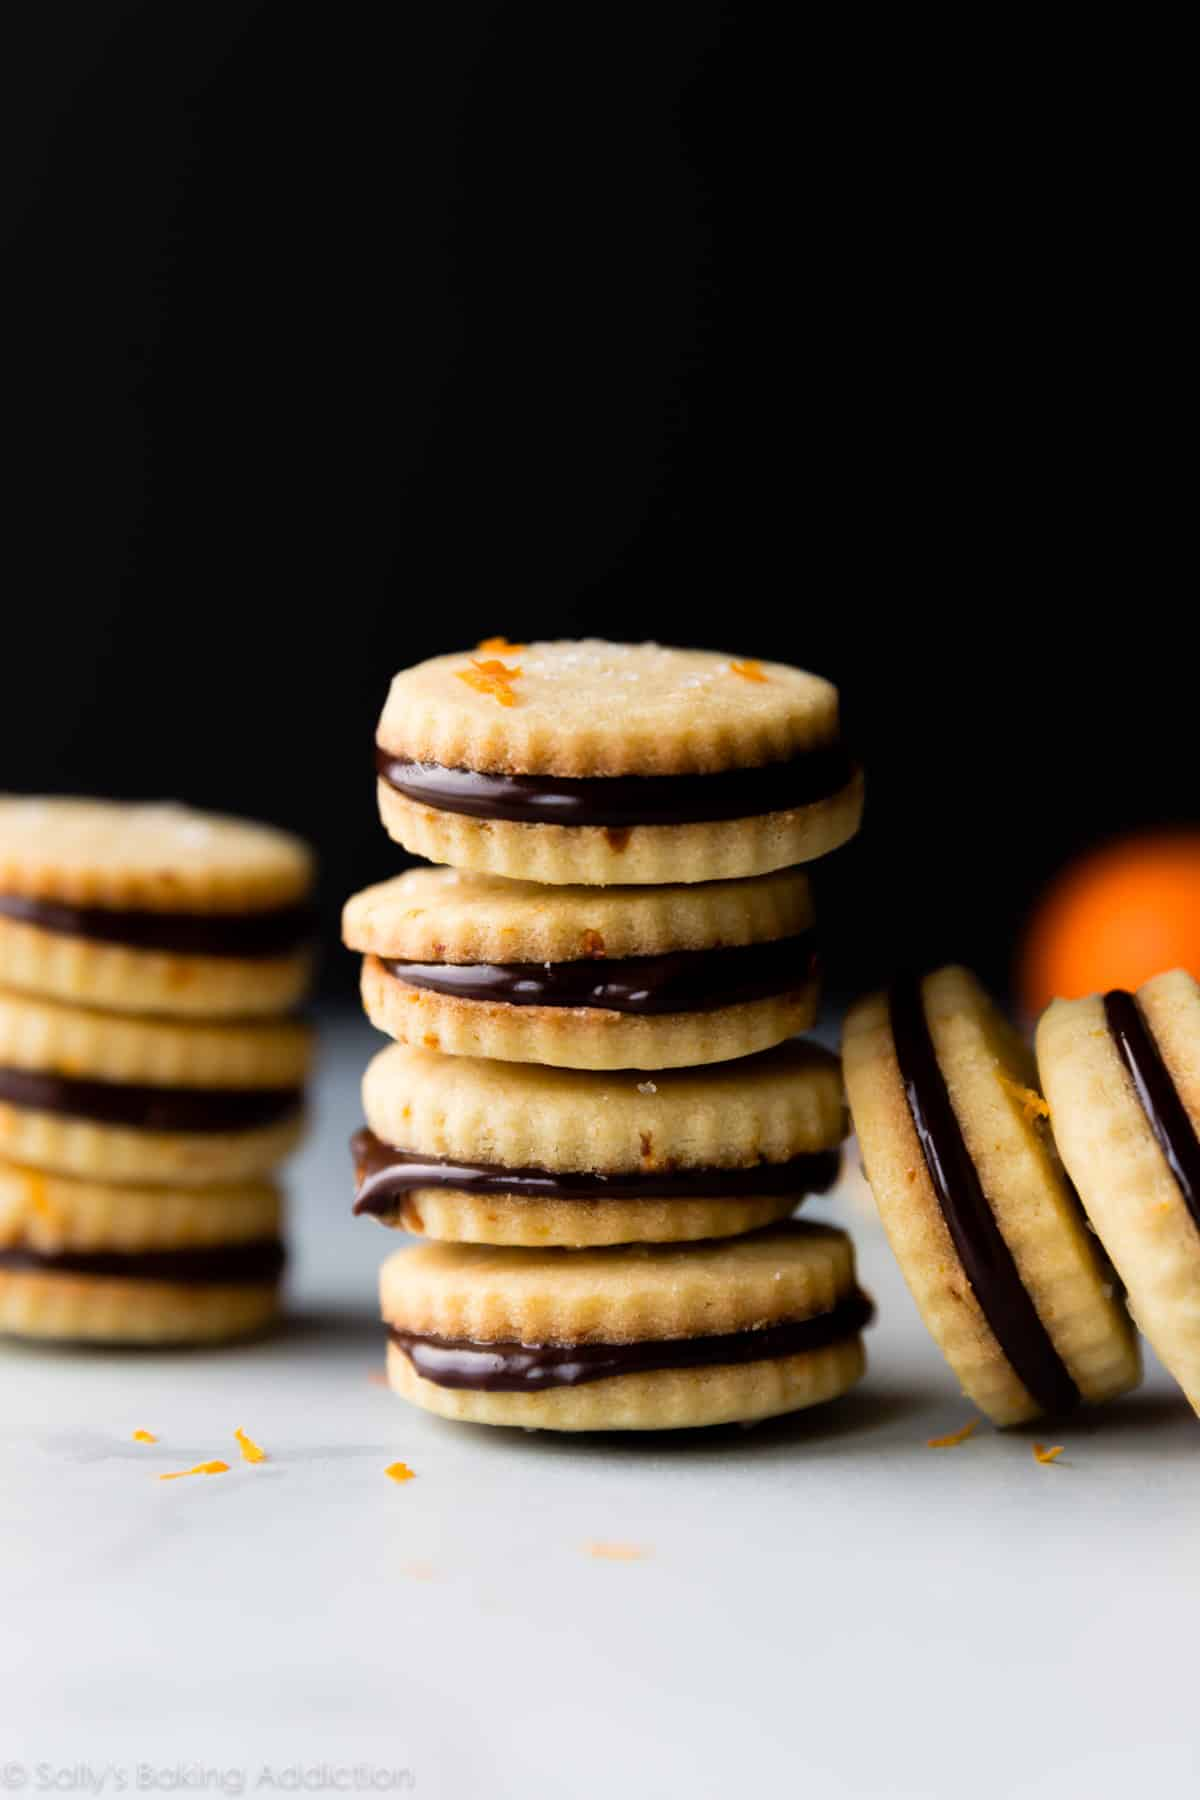 Butter shortbread cookies with orange zest and chocolate ganache! These deliciously soft cookie sandwiches taste just like Milano cookies! Recipe on sallysbakingaddiction.com